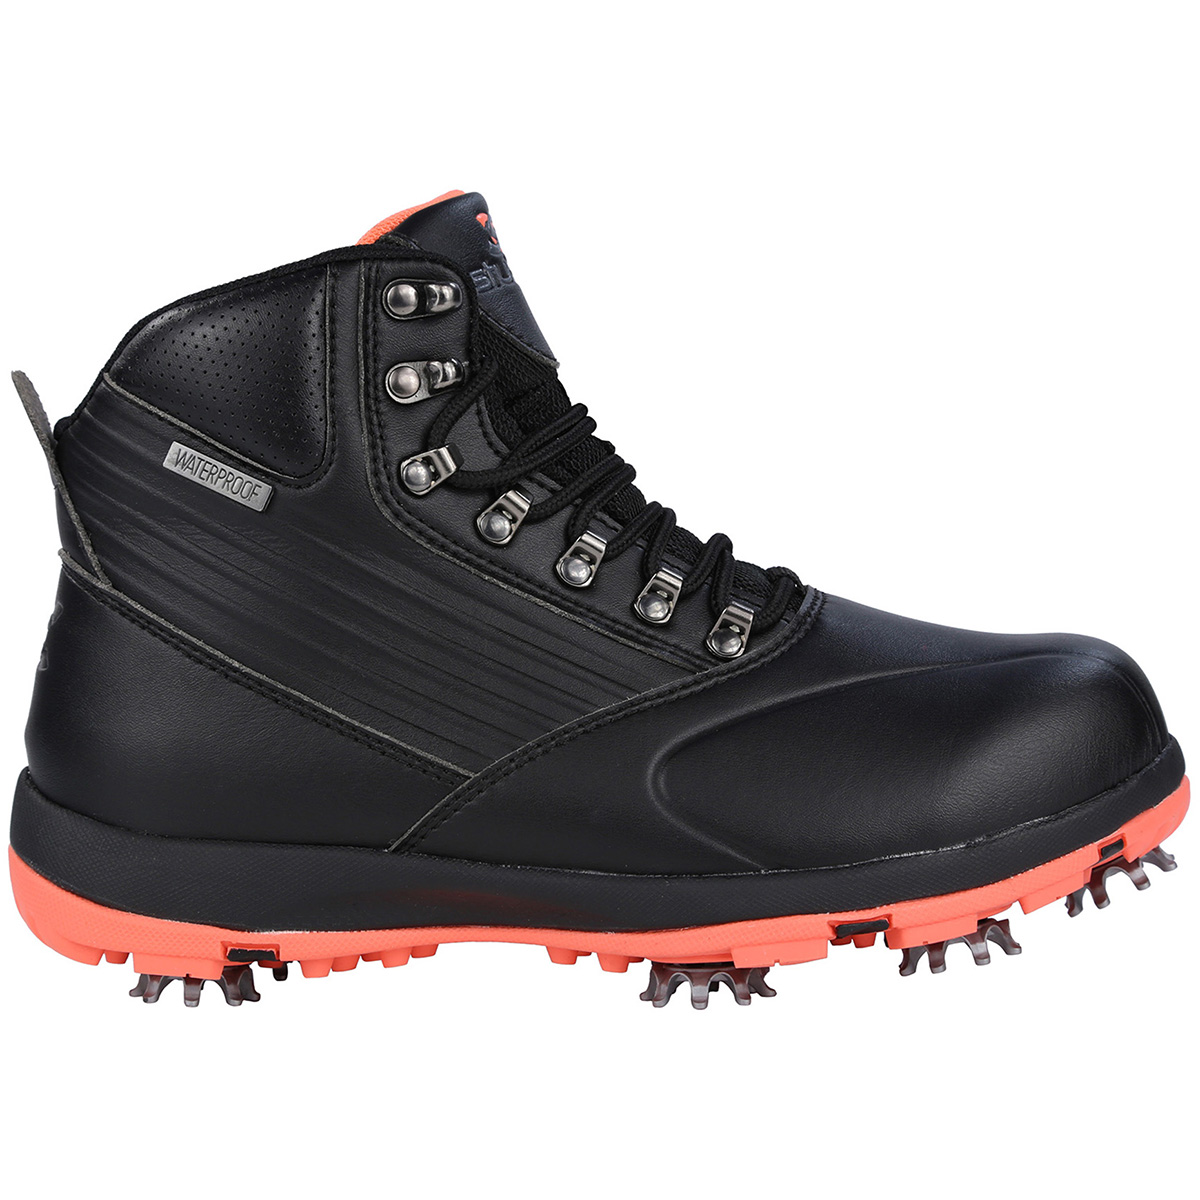 Stuburt Ladies Endurance Waterproof Boot